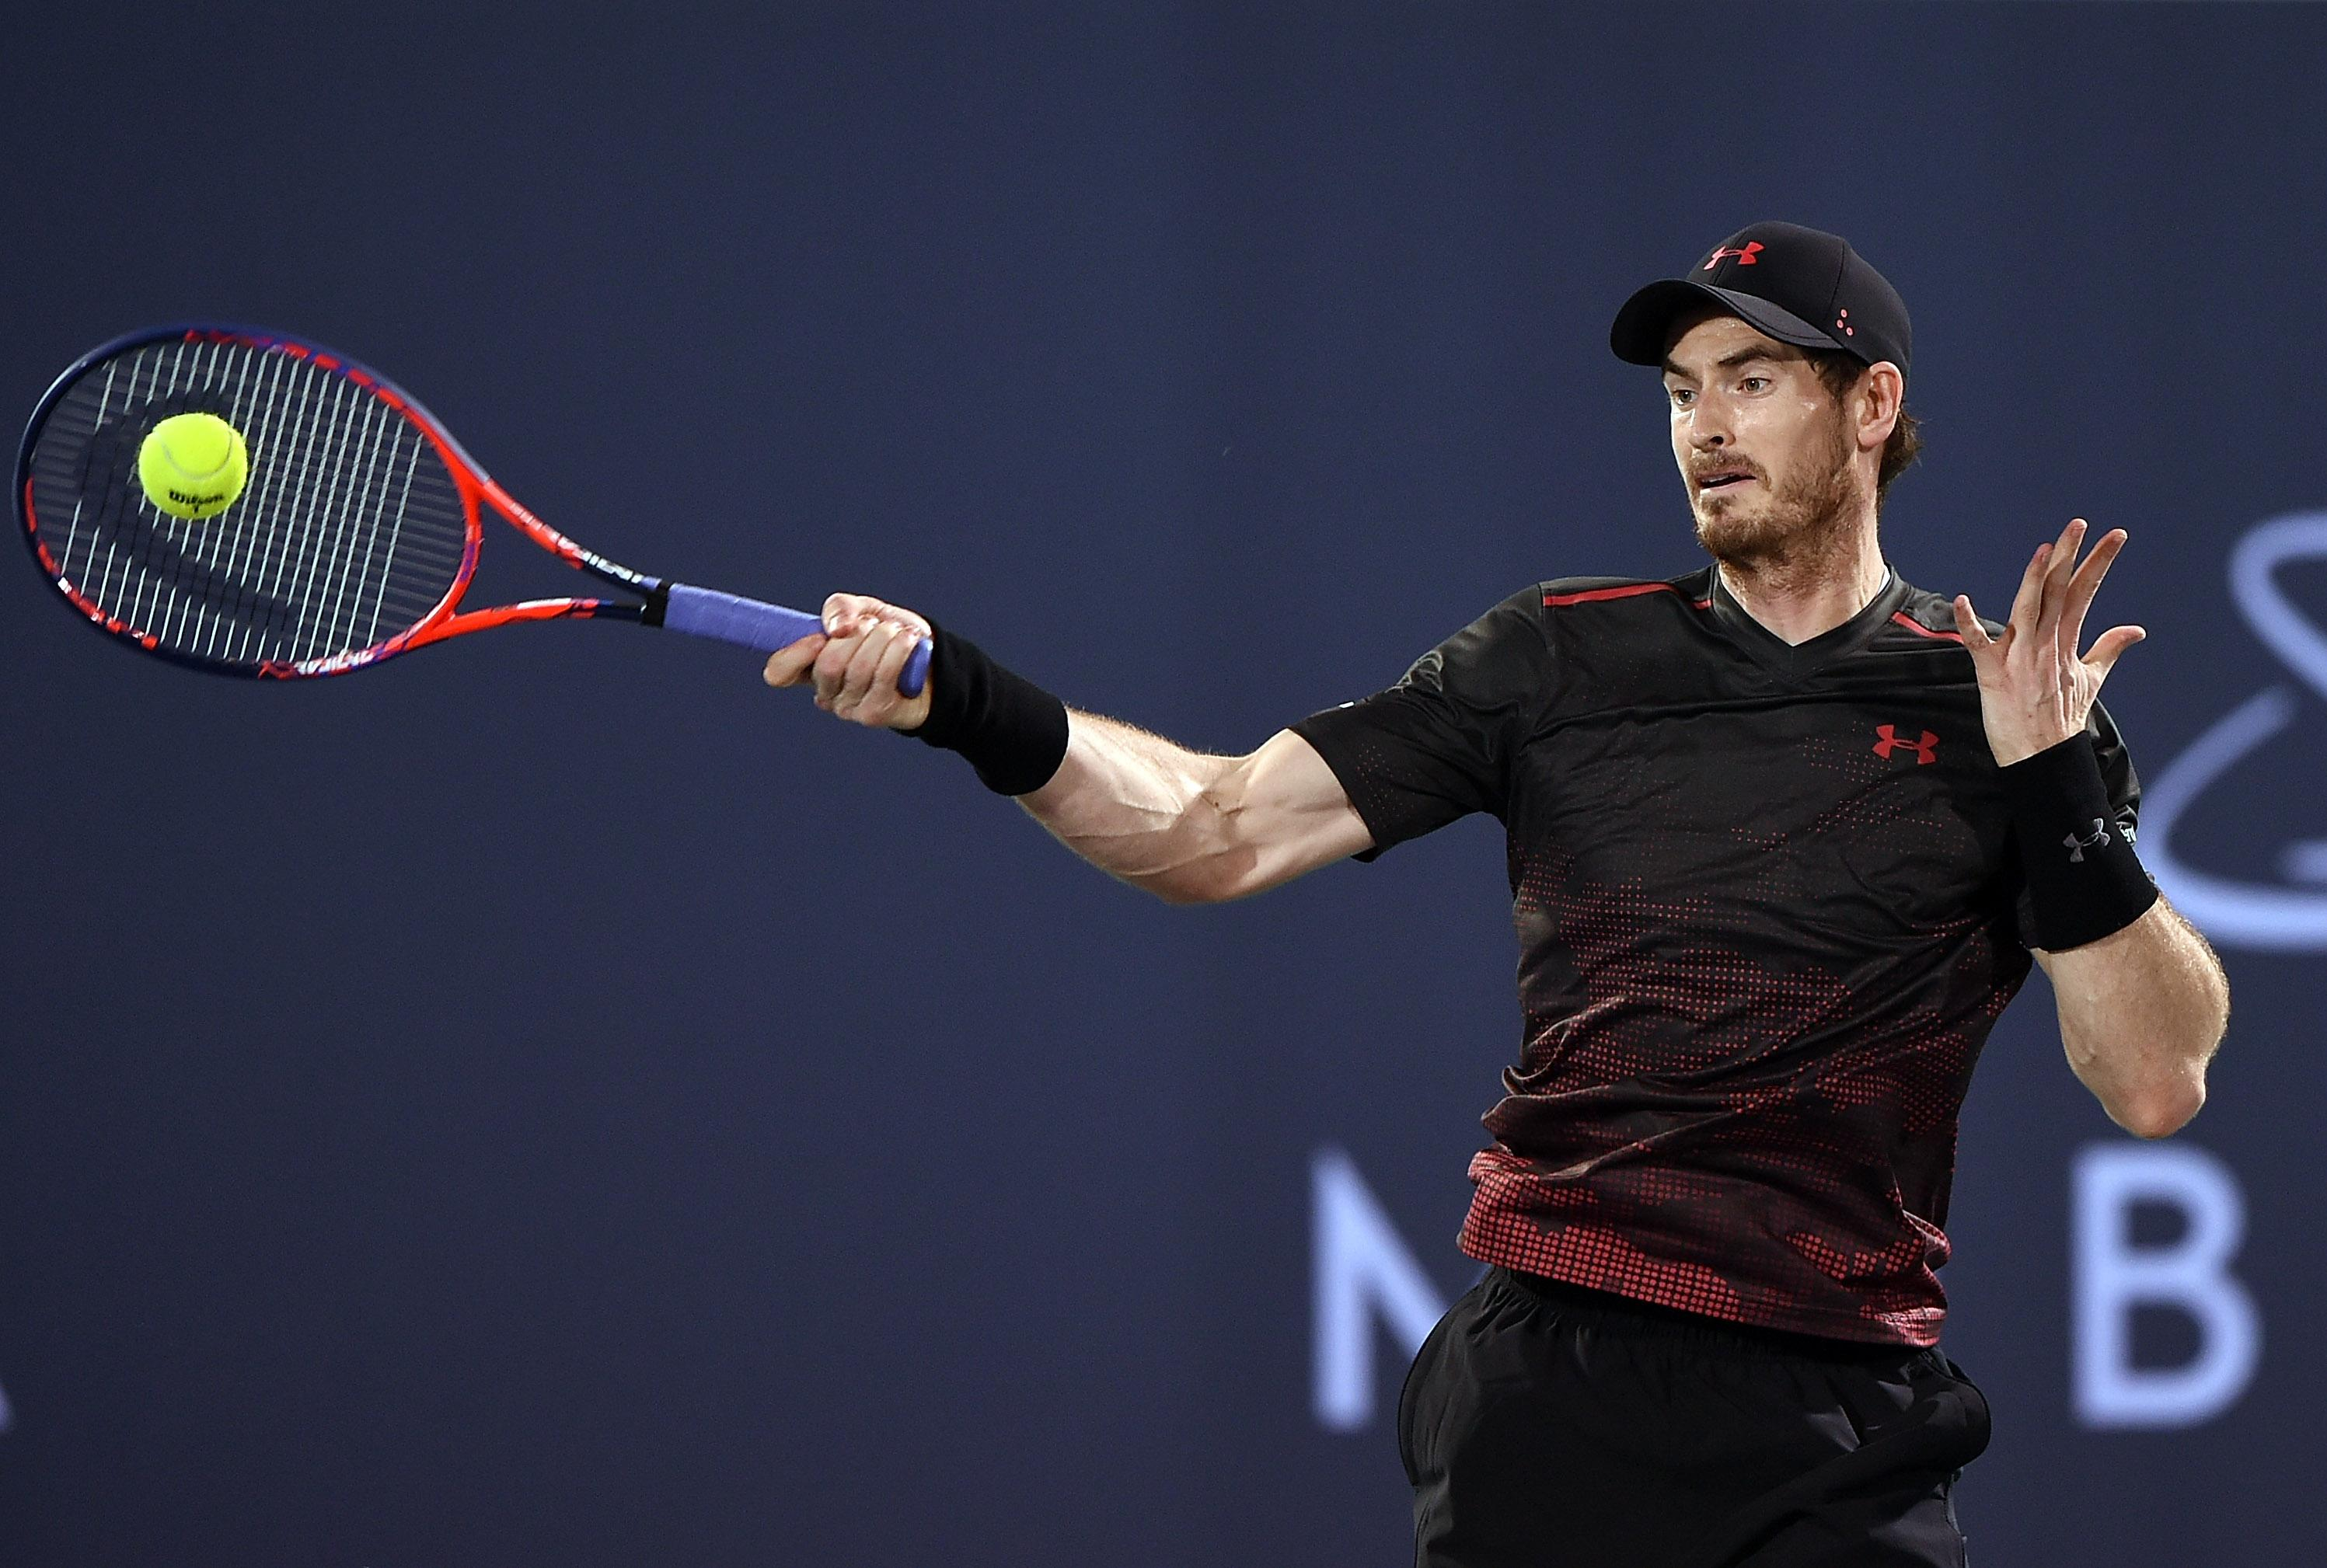 The Brit admitted his progress has been slow but he's getting closer to playing again